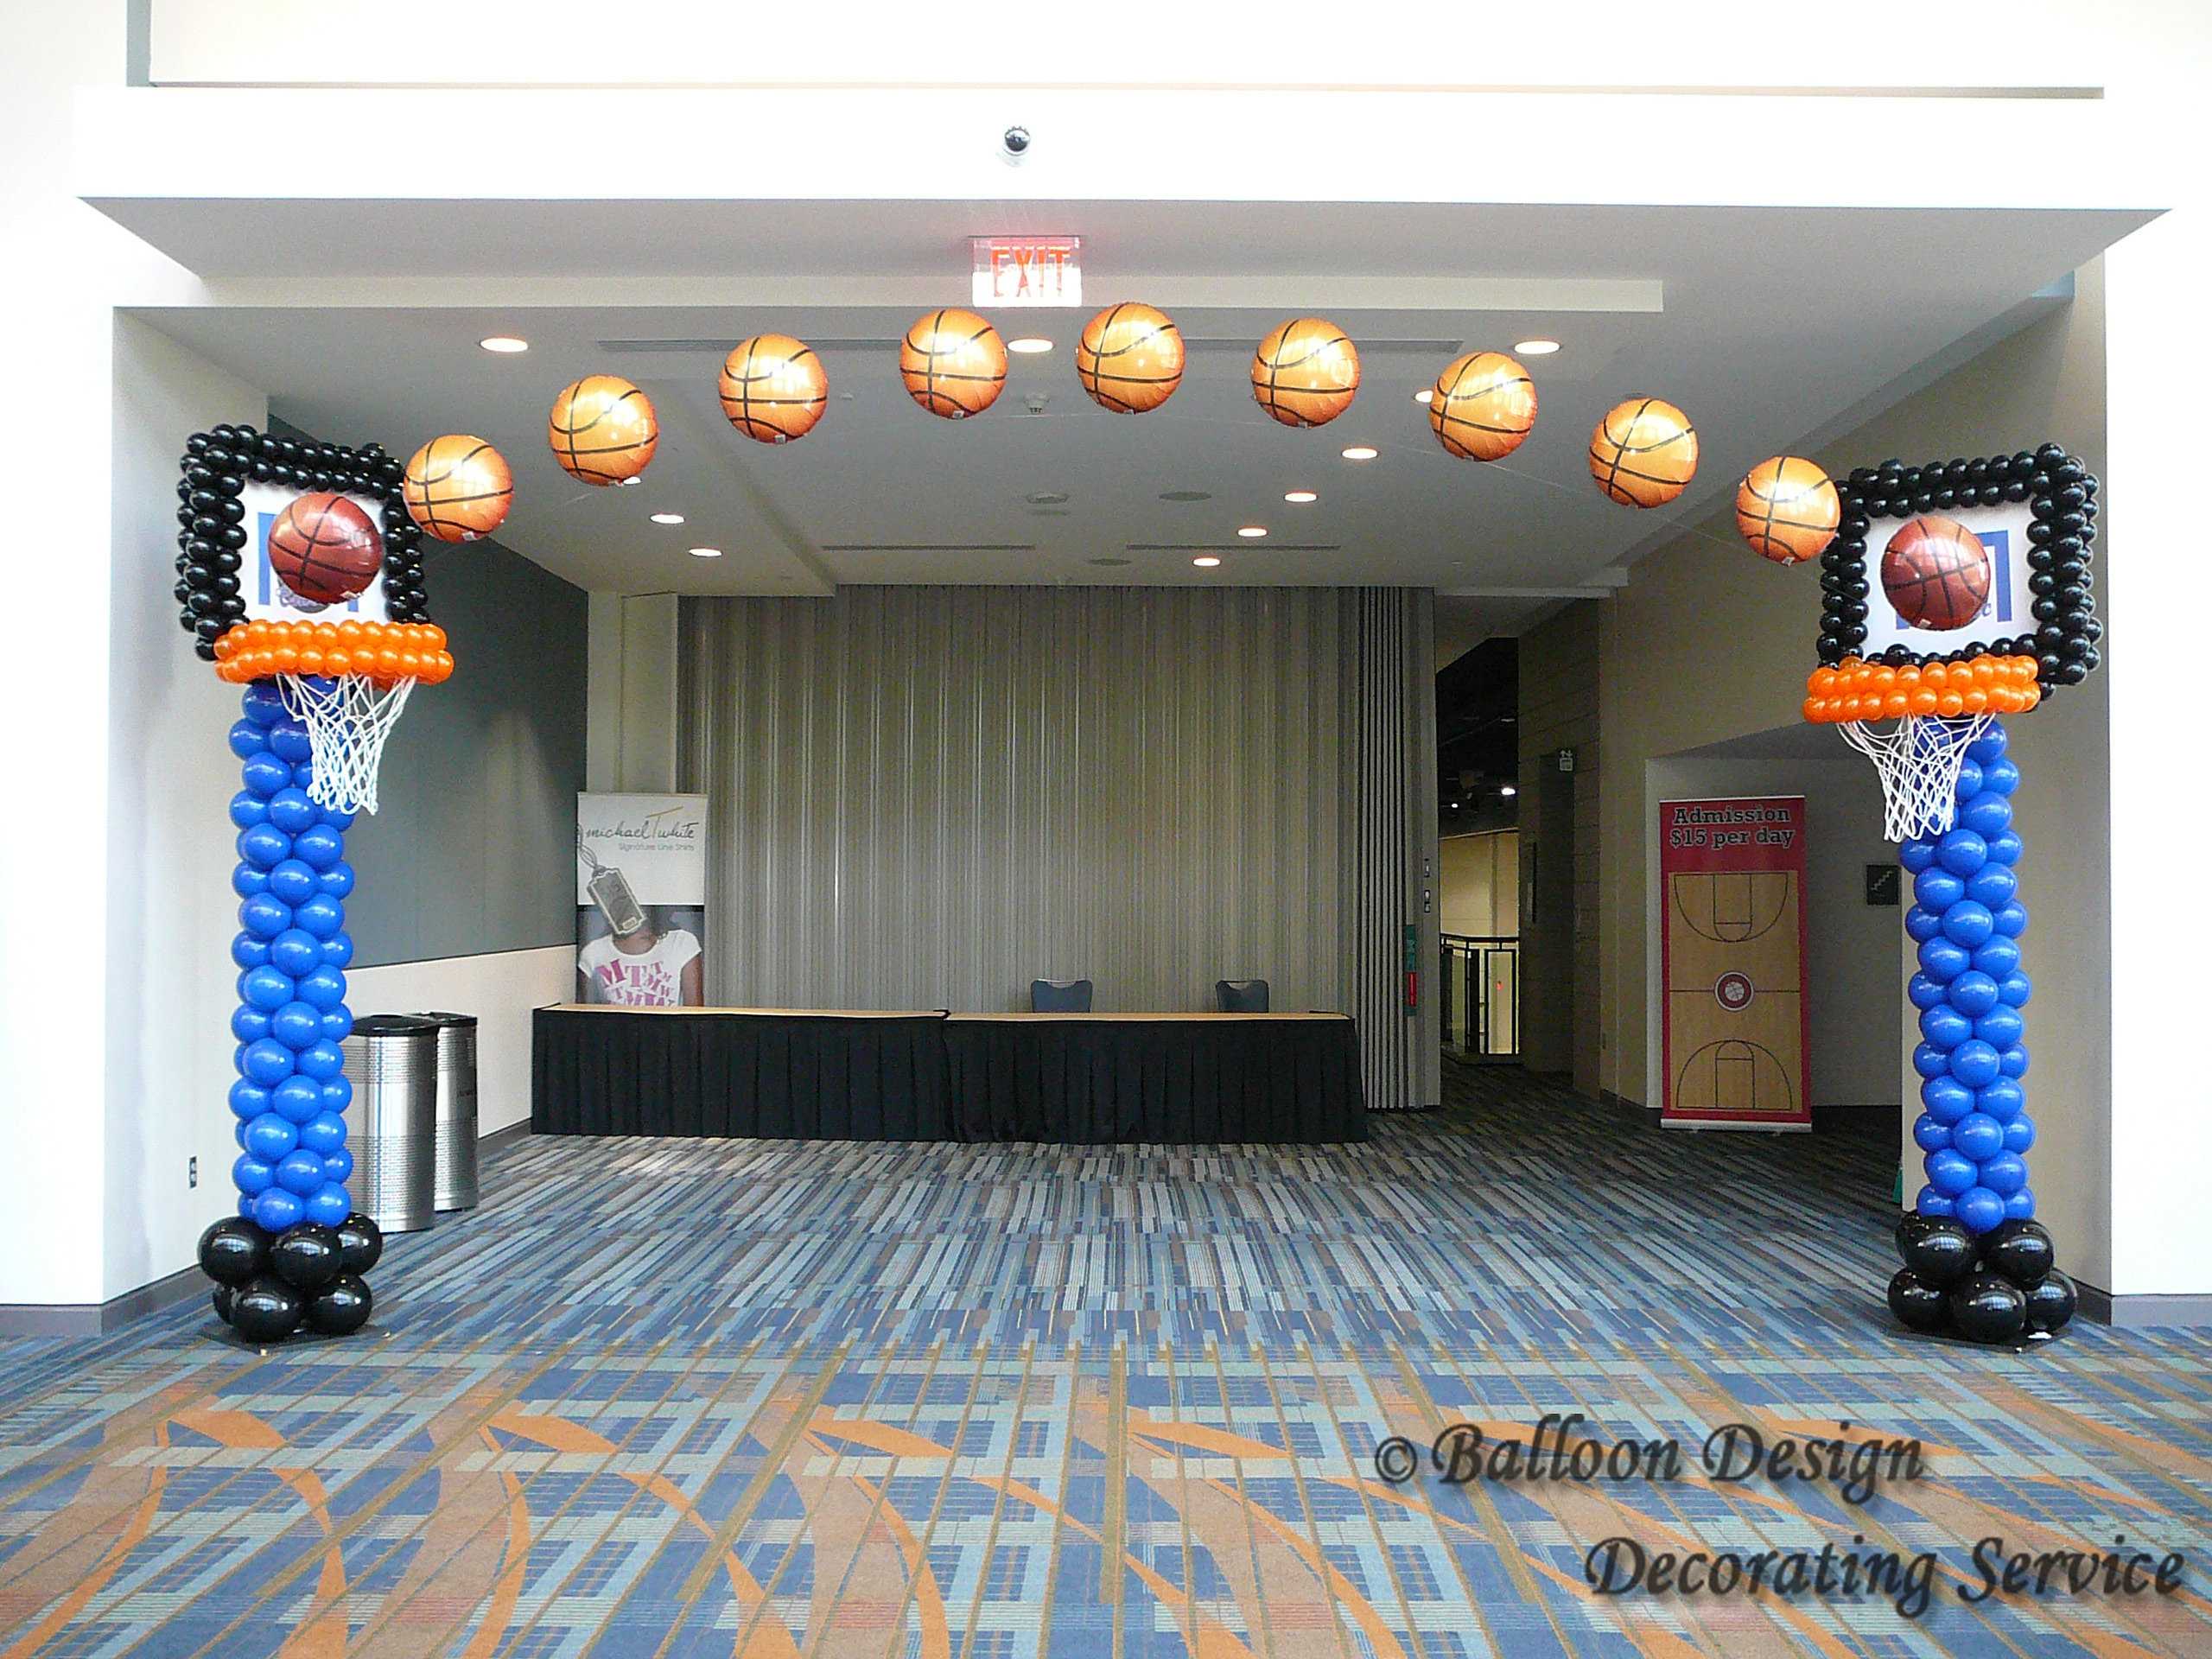 Balloon Design Decorating Service Balloons Raleigh Nc